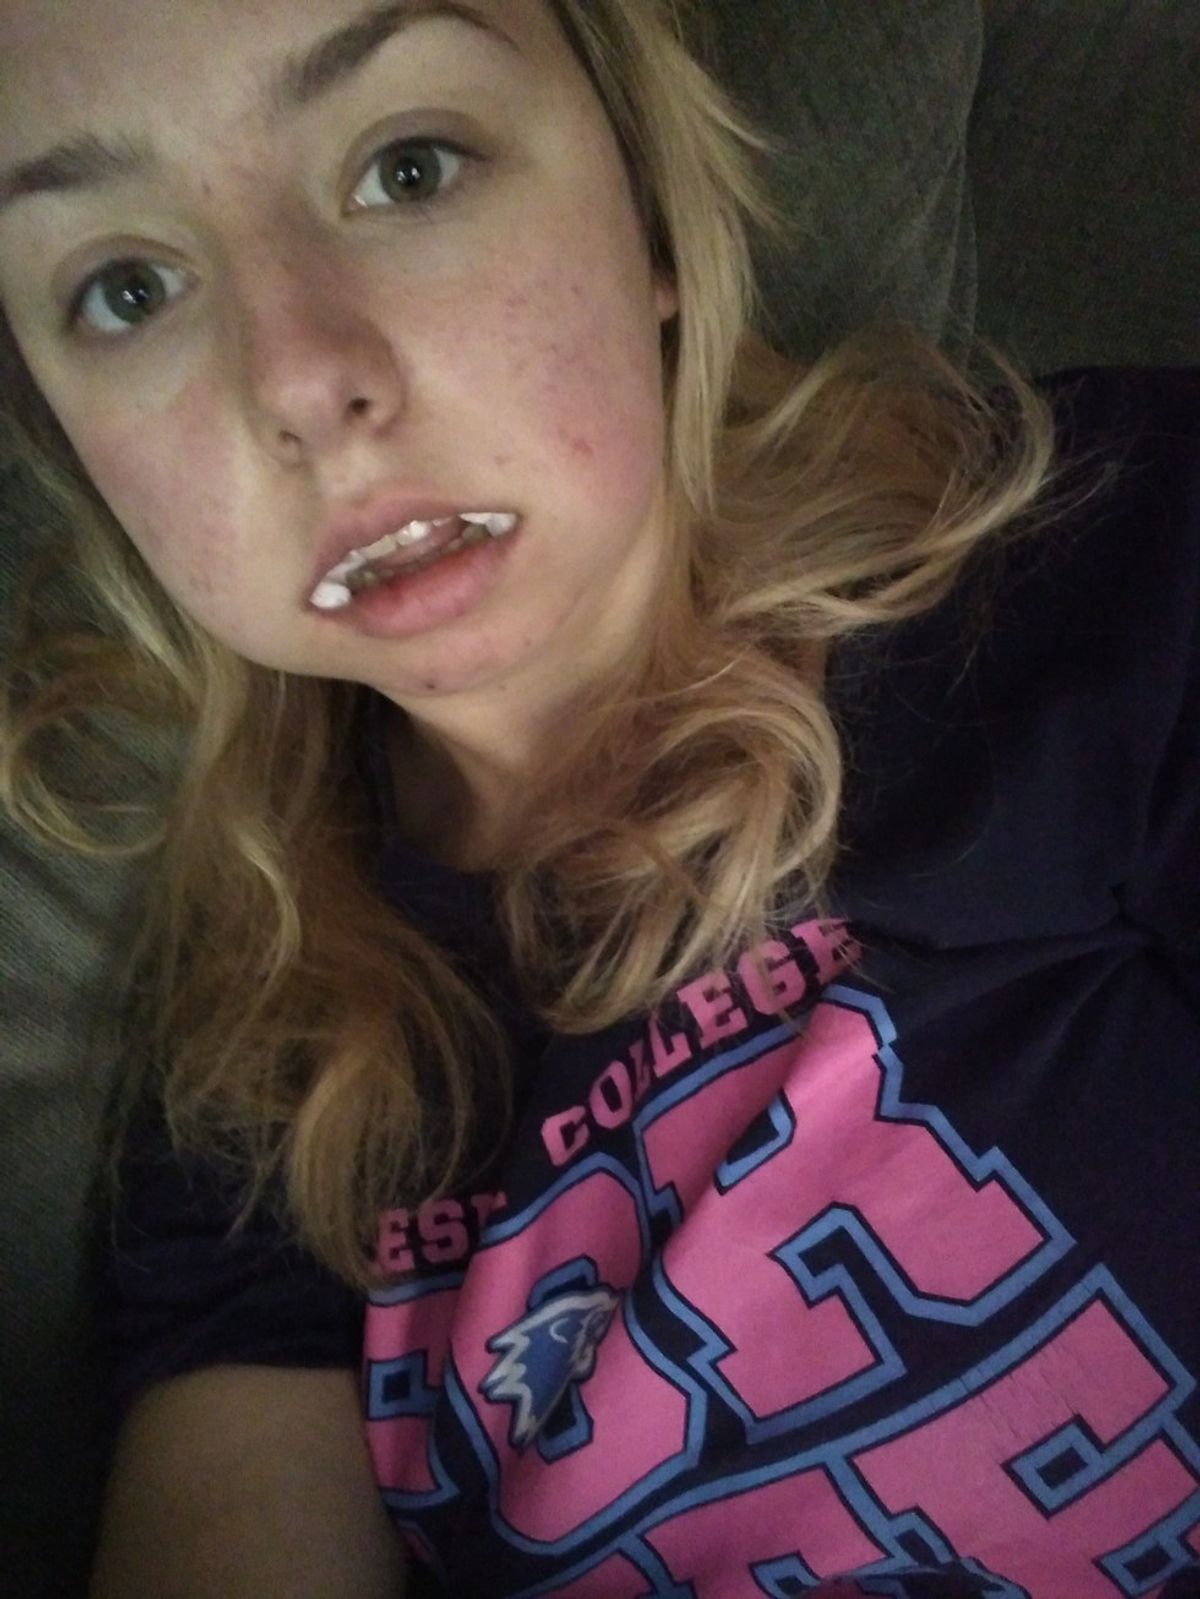 20 Stages of Getting Your Wisdom Teeth Taken Out